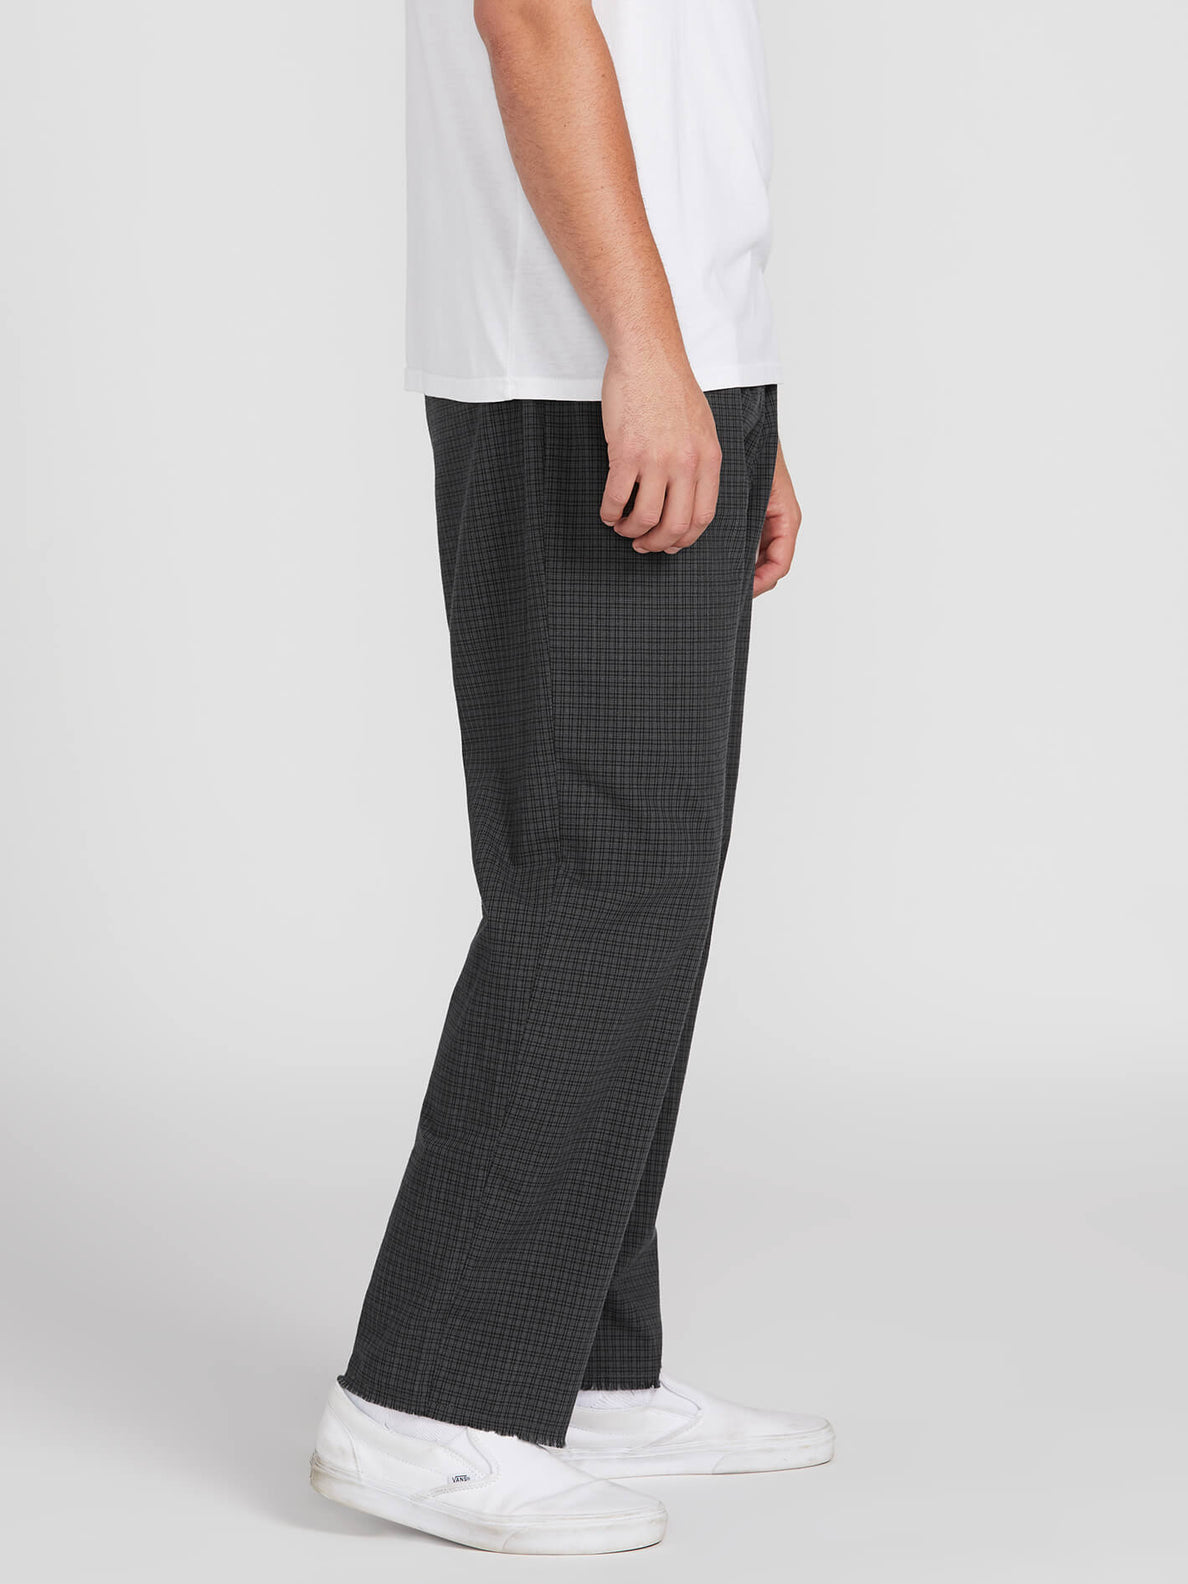 LOOSIE THRIFTER PANT (A1212000_DCR) [3]